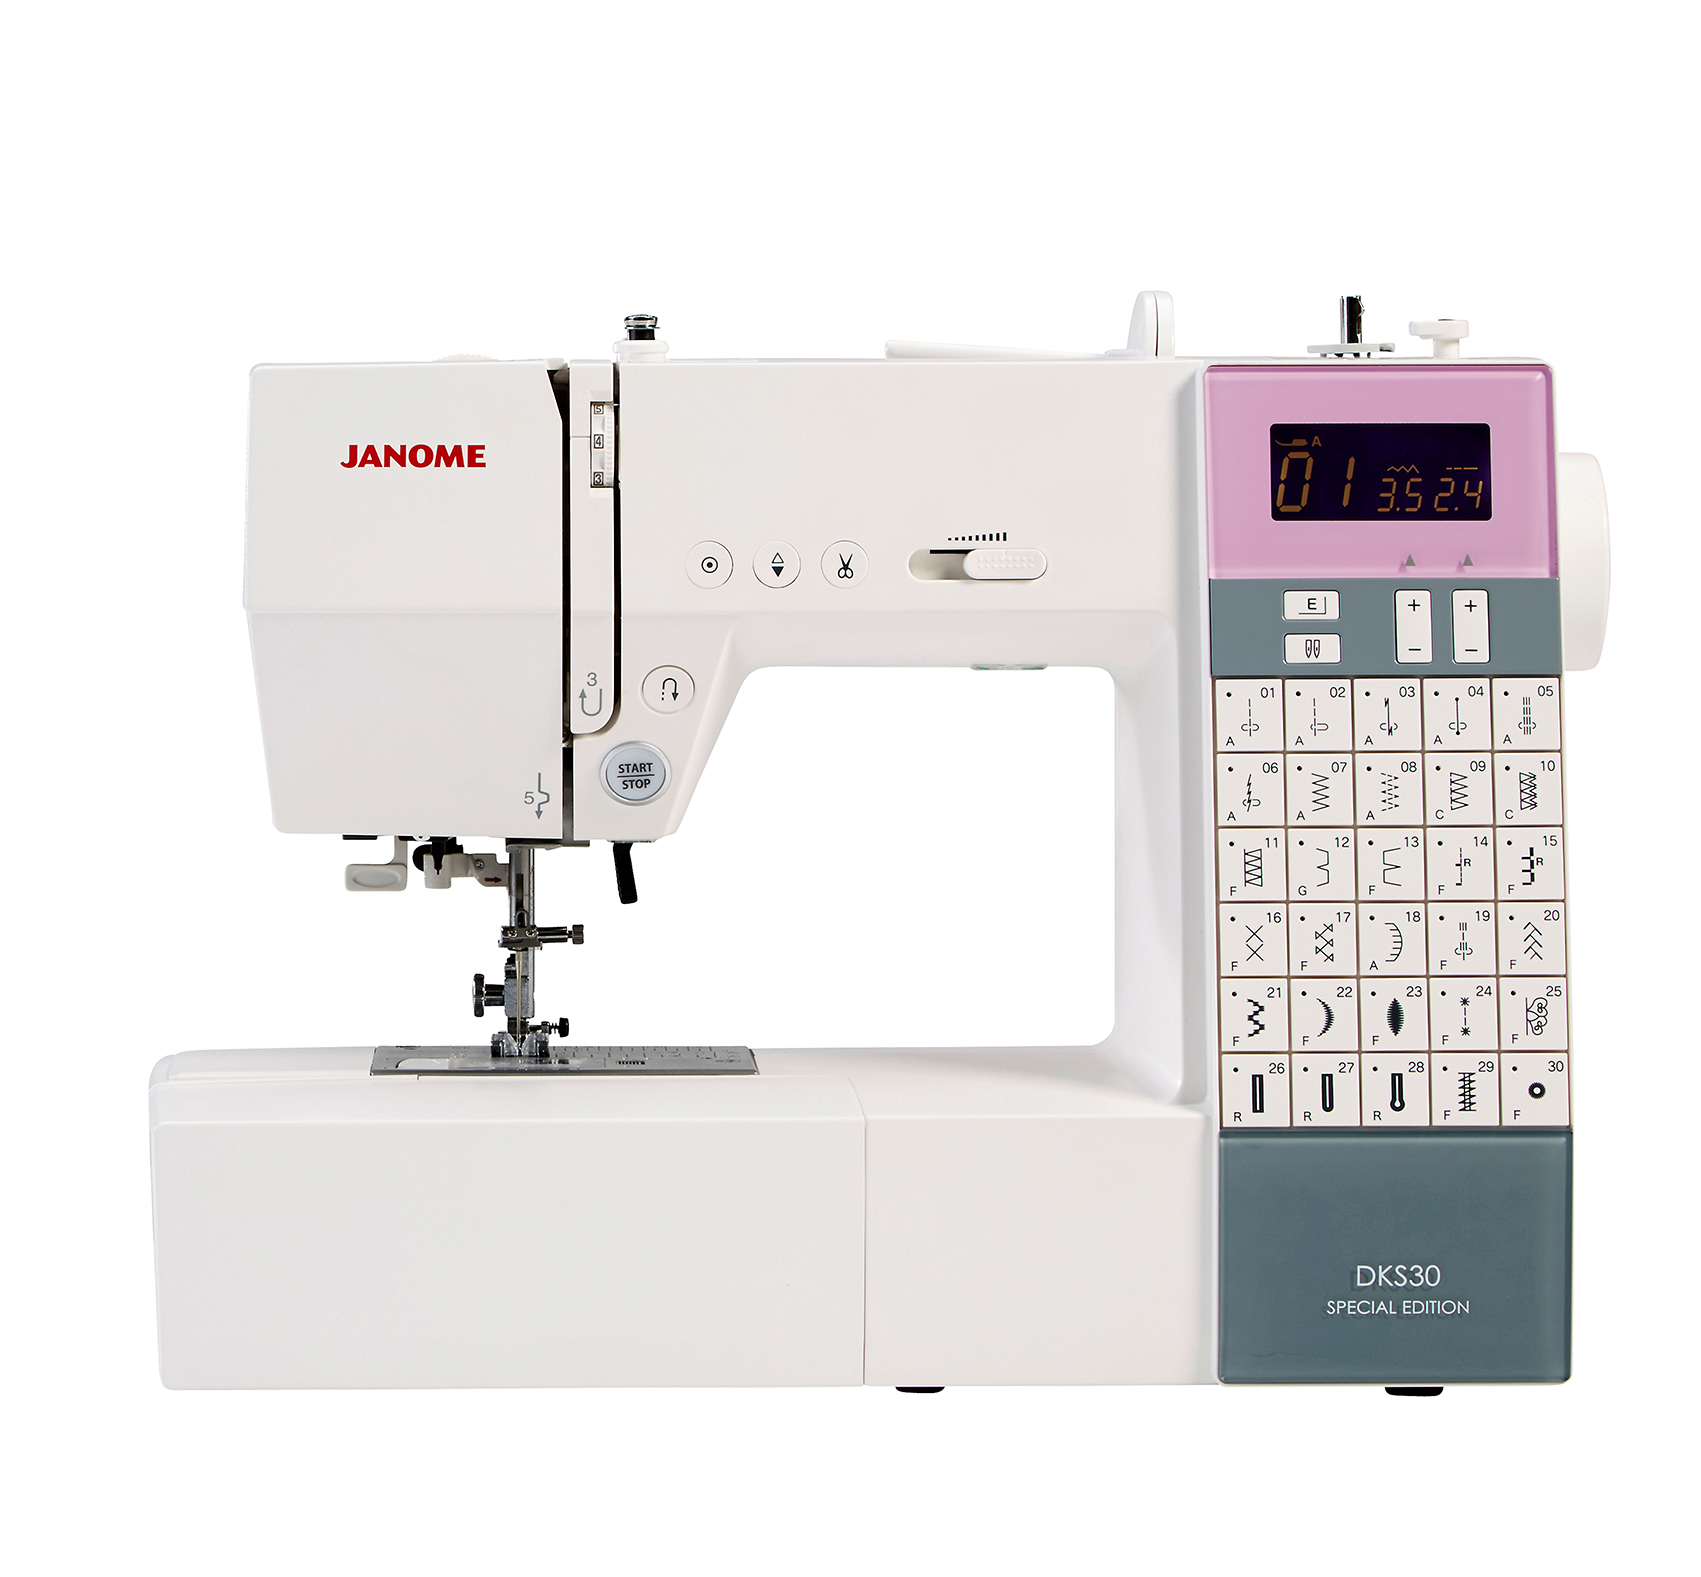 Janome DKS30 Special Edition